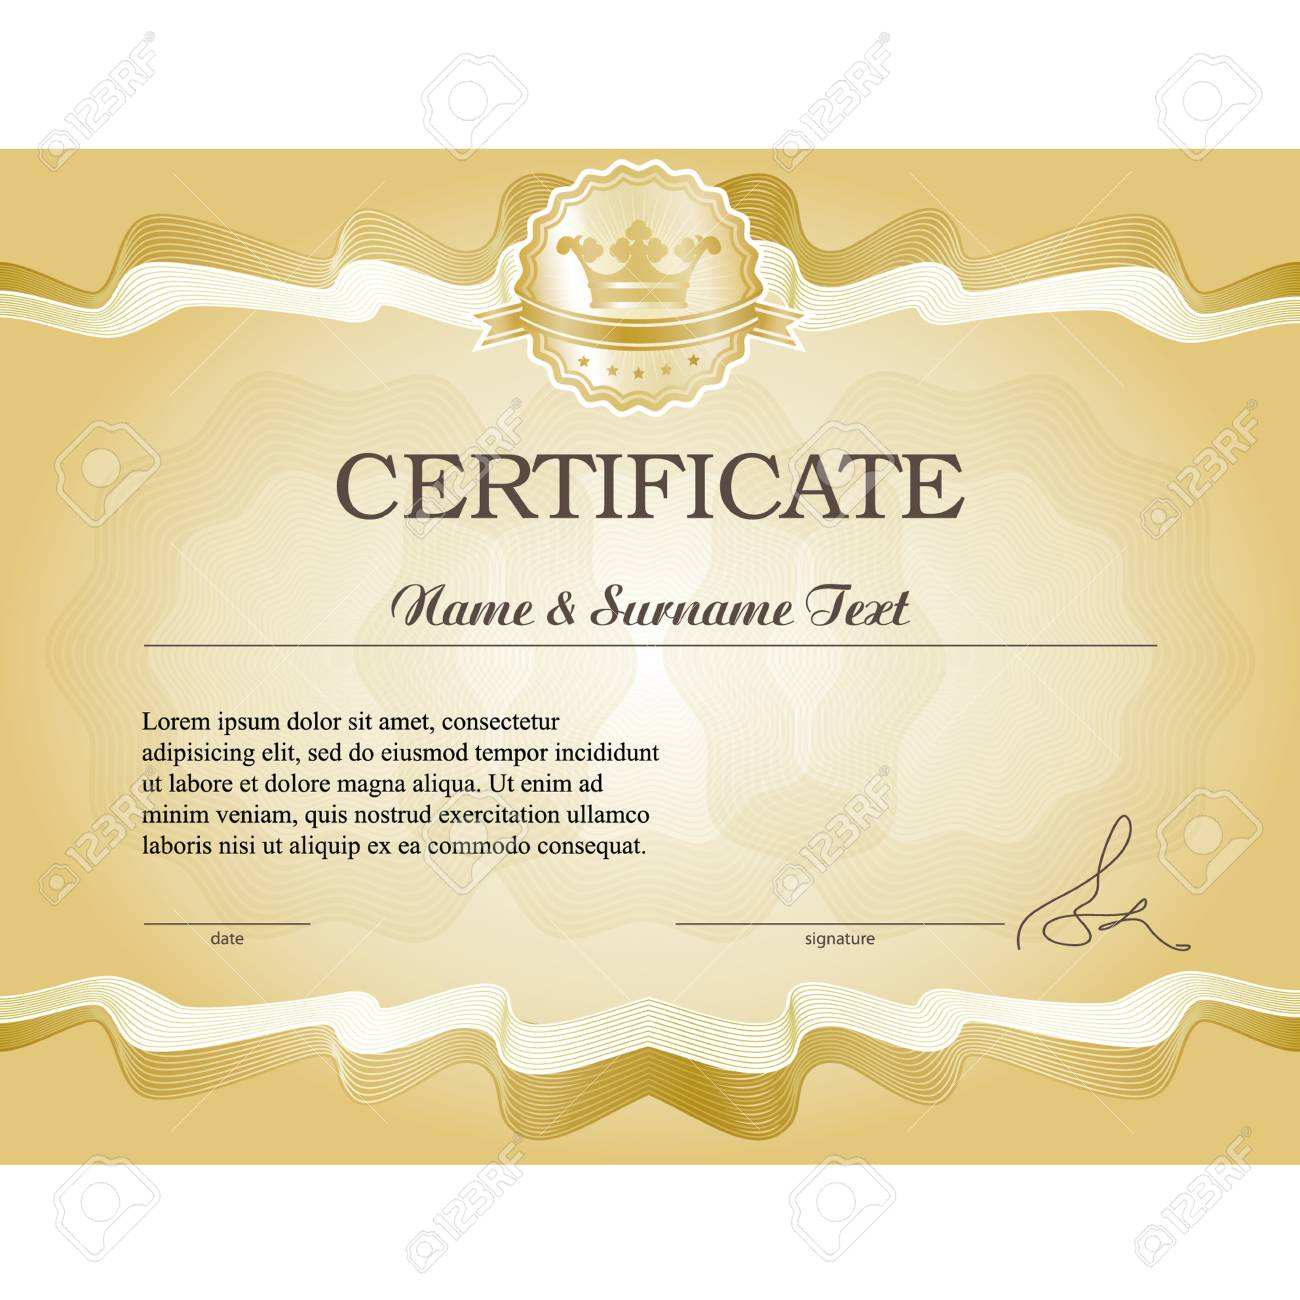 Gold Certificate Vector Illustration Grouped For Easy Editing